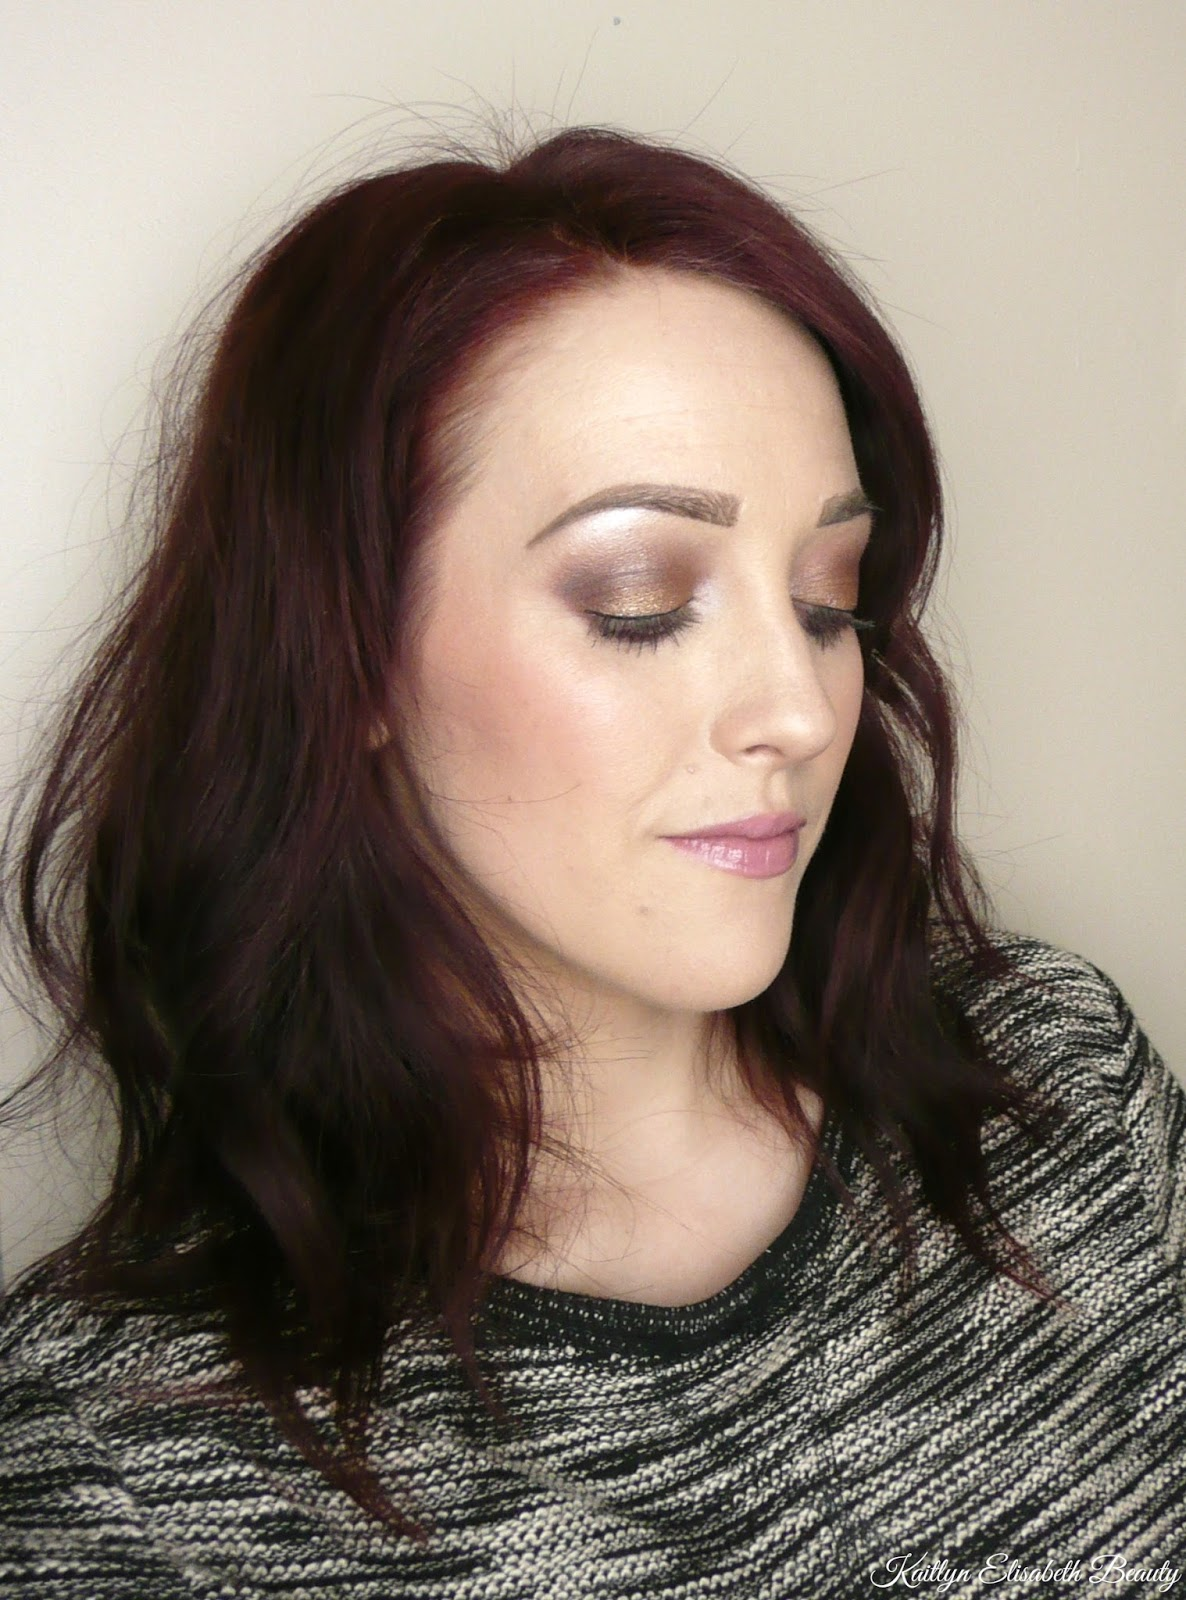 Smoked Sunset featuring Morphe Jaclyn Hill Palette